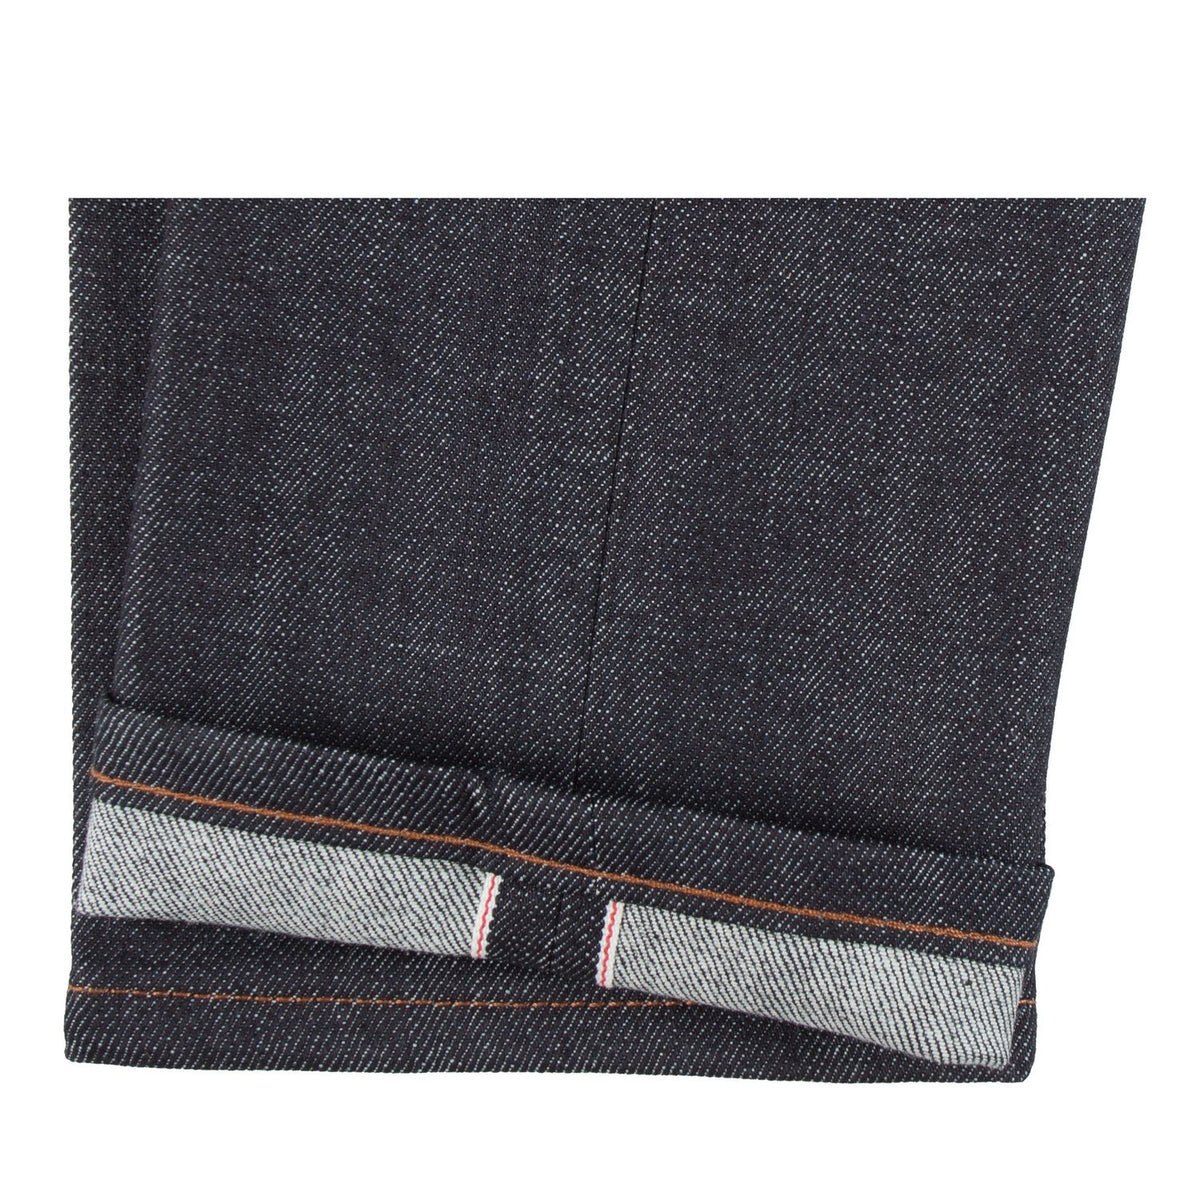 Super Guy | 12.5 oz | Stretch Selvedge